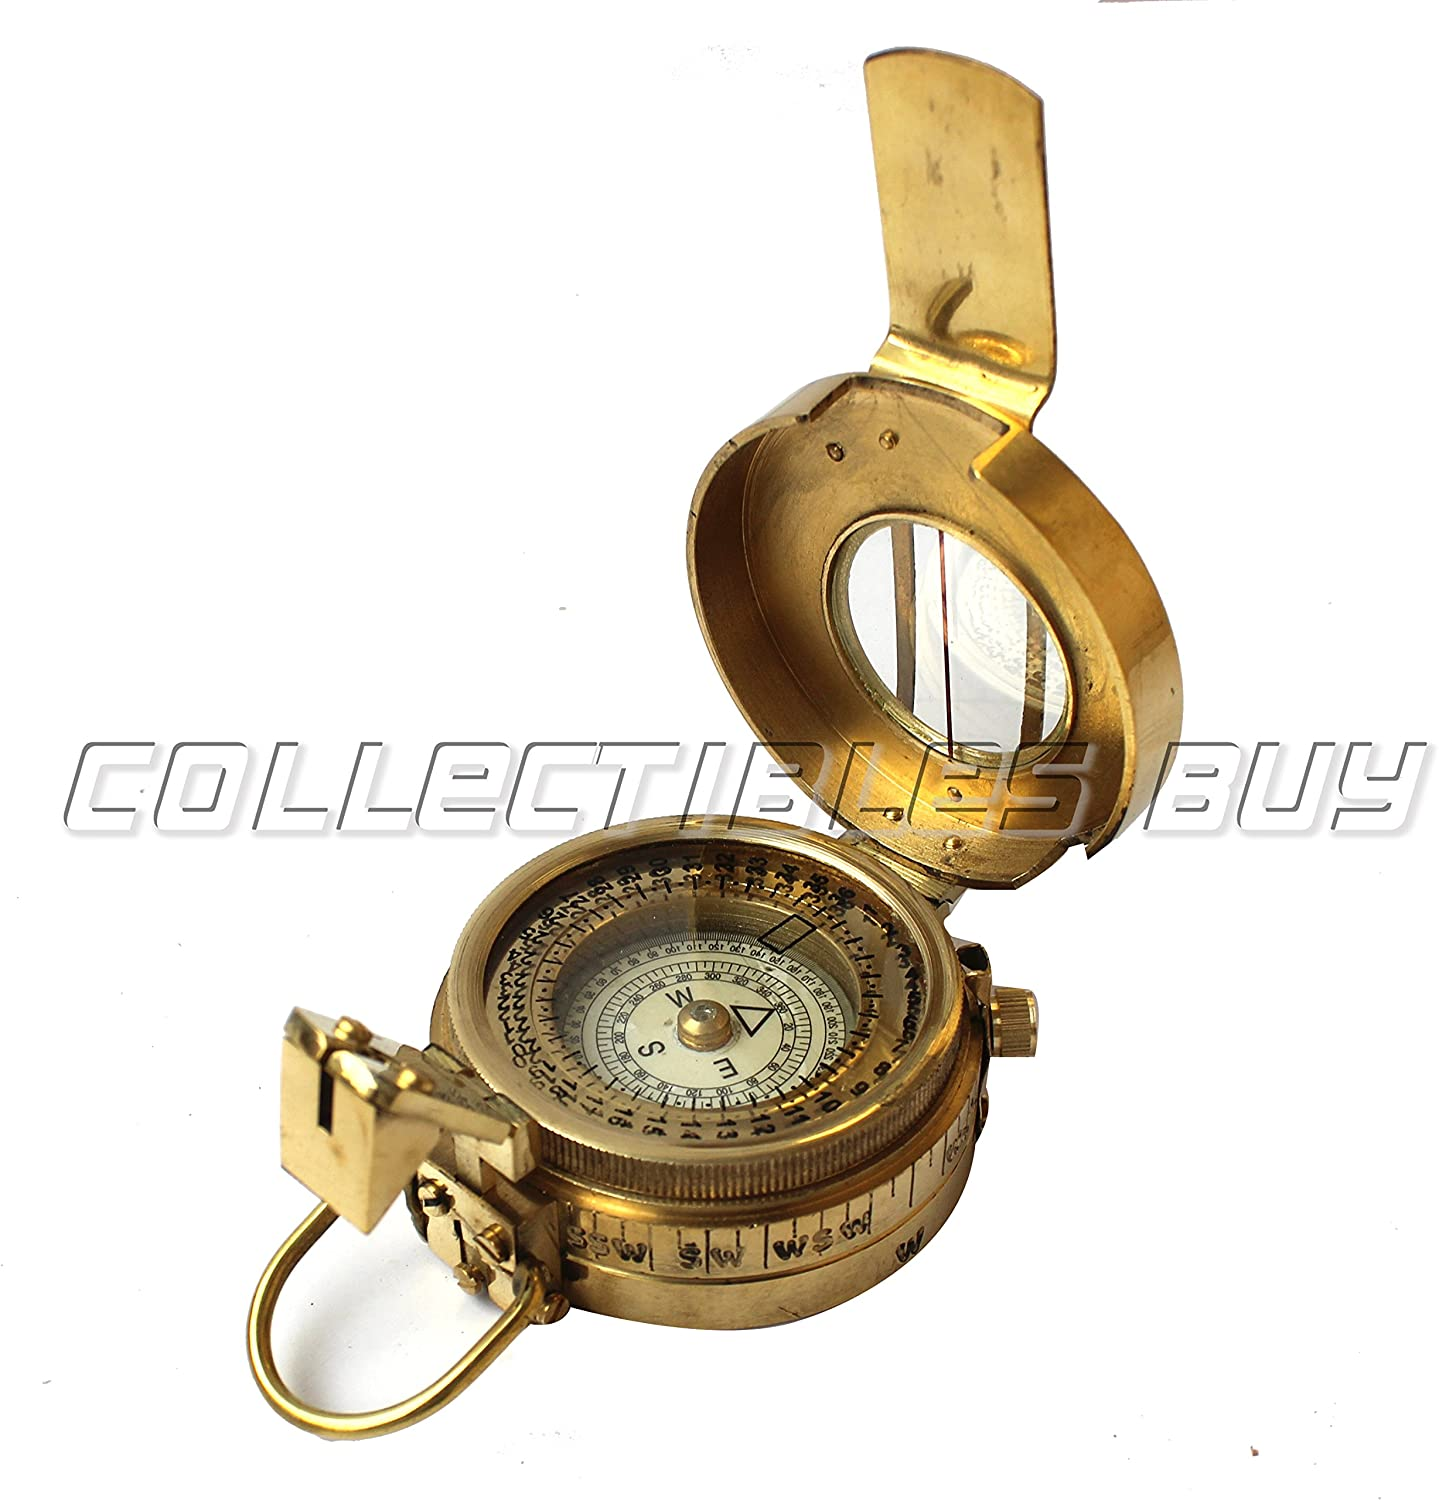 collectiblesBuy A Marine Military Brass Compass Handmade Vintage Pocket Antique Marine Sailor